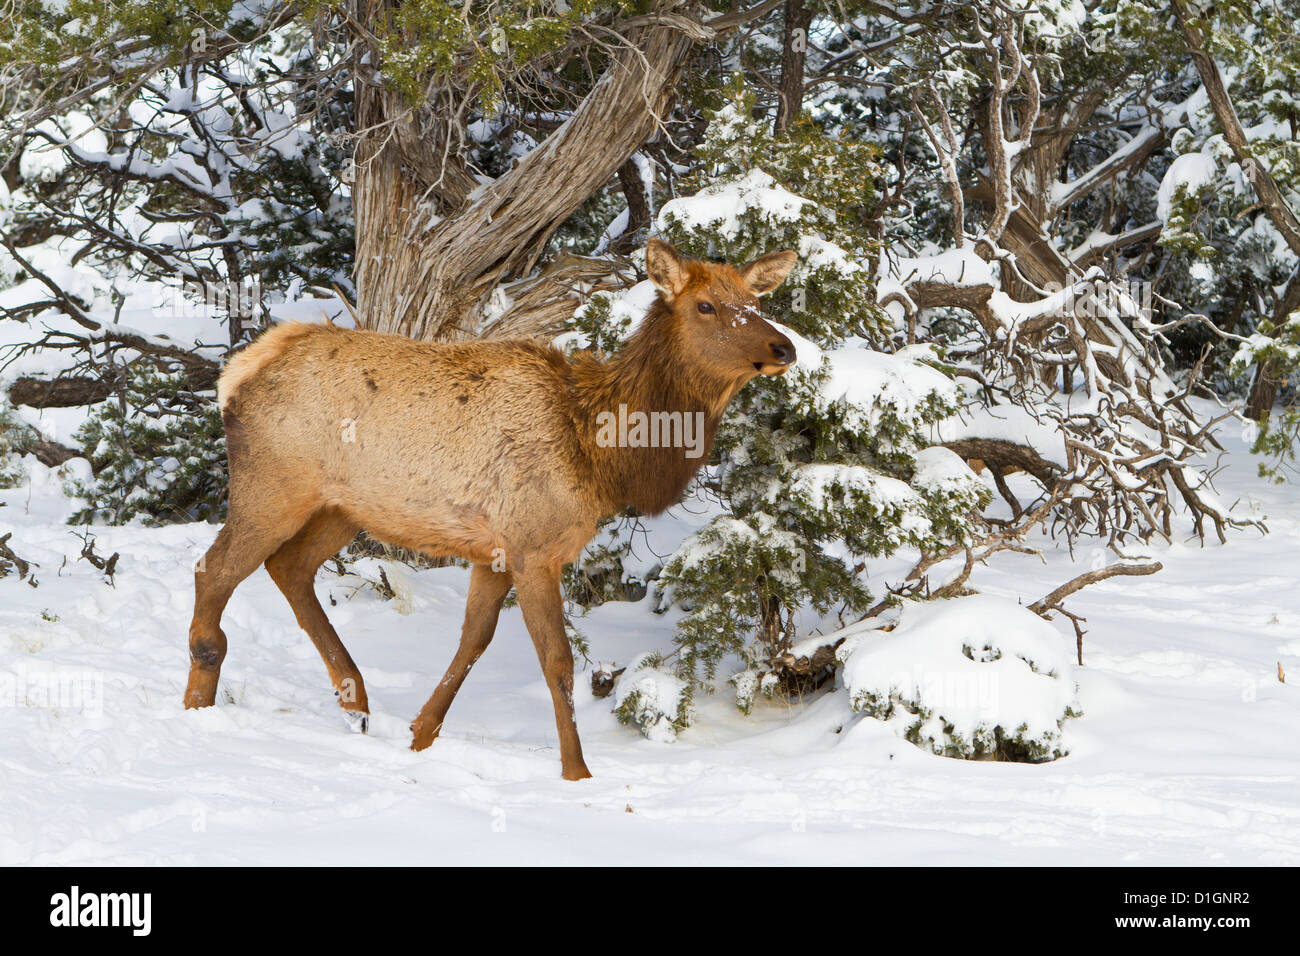 Elk, Cervus canadensis, wapiti, South Rim, Grand Canyon National Park, Arizona, United States of America, North - Stock Image